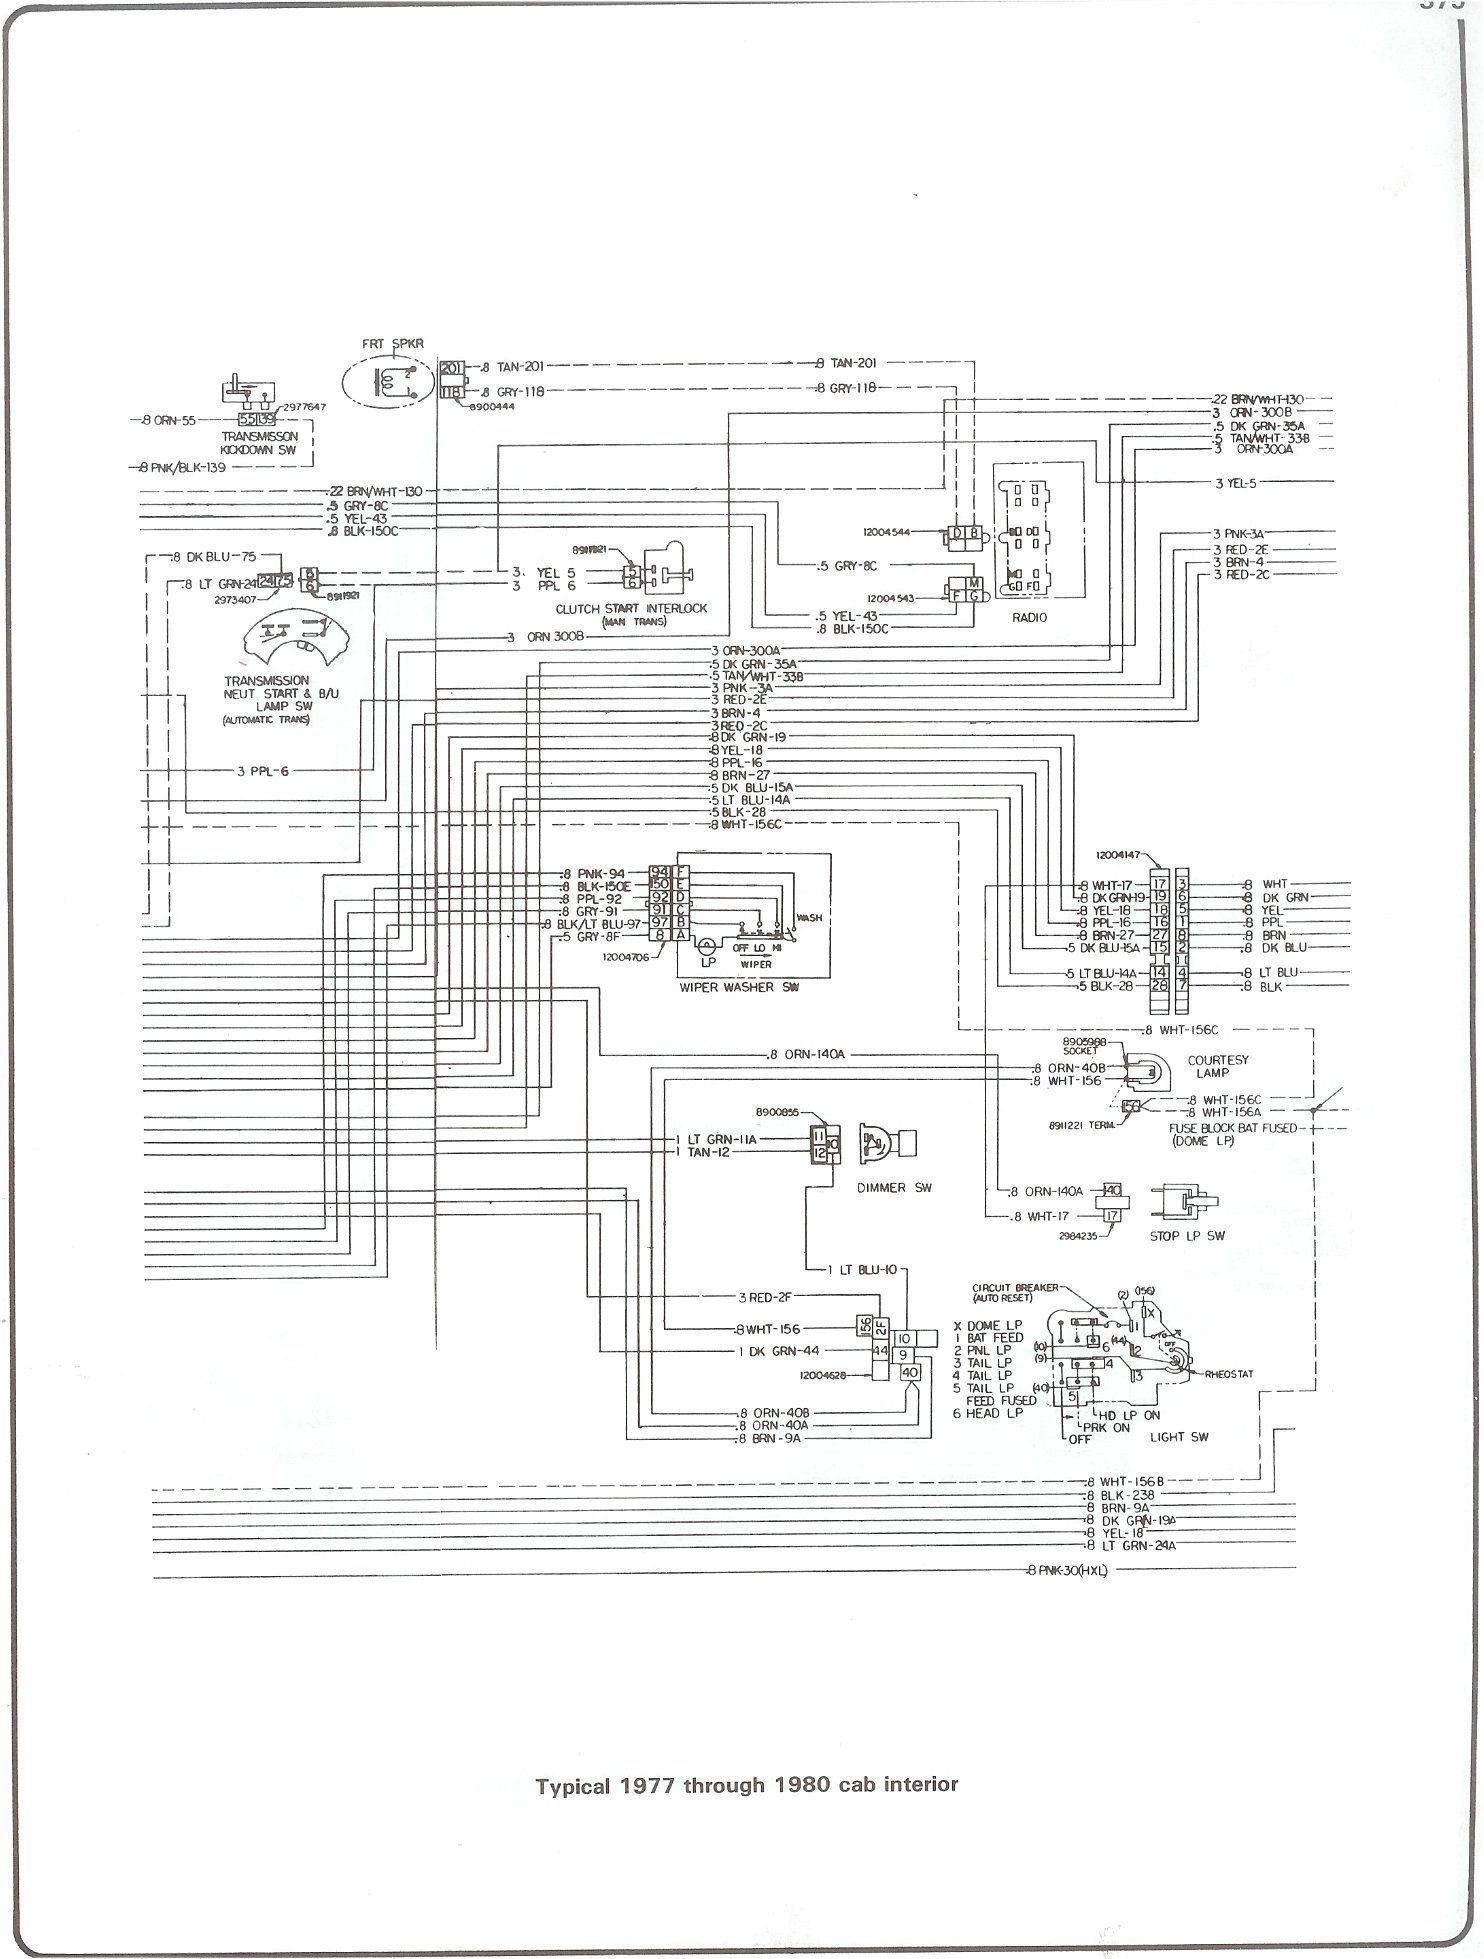 Wiper Motor Wiring Diagram For 68 Camaro Chevy Windshield Switch 1974 Firebird Free Download Librarycomplete 73 87 Diagrams